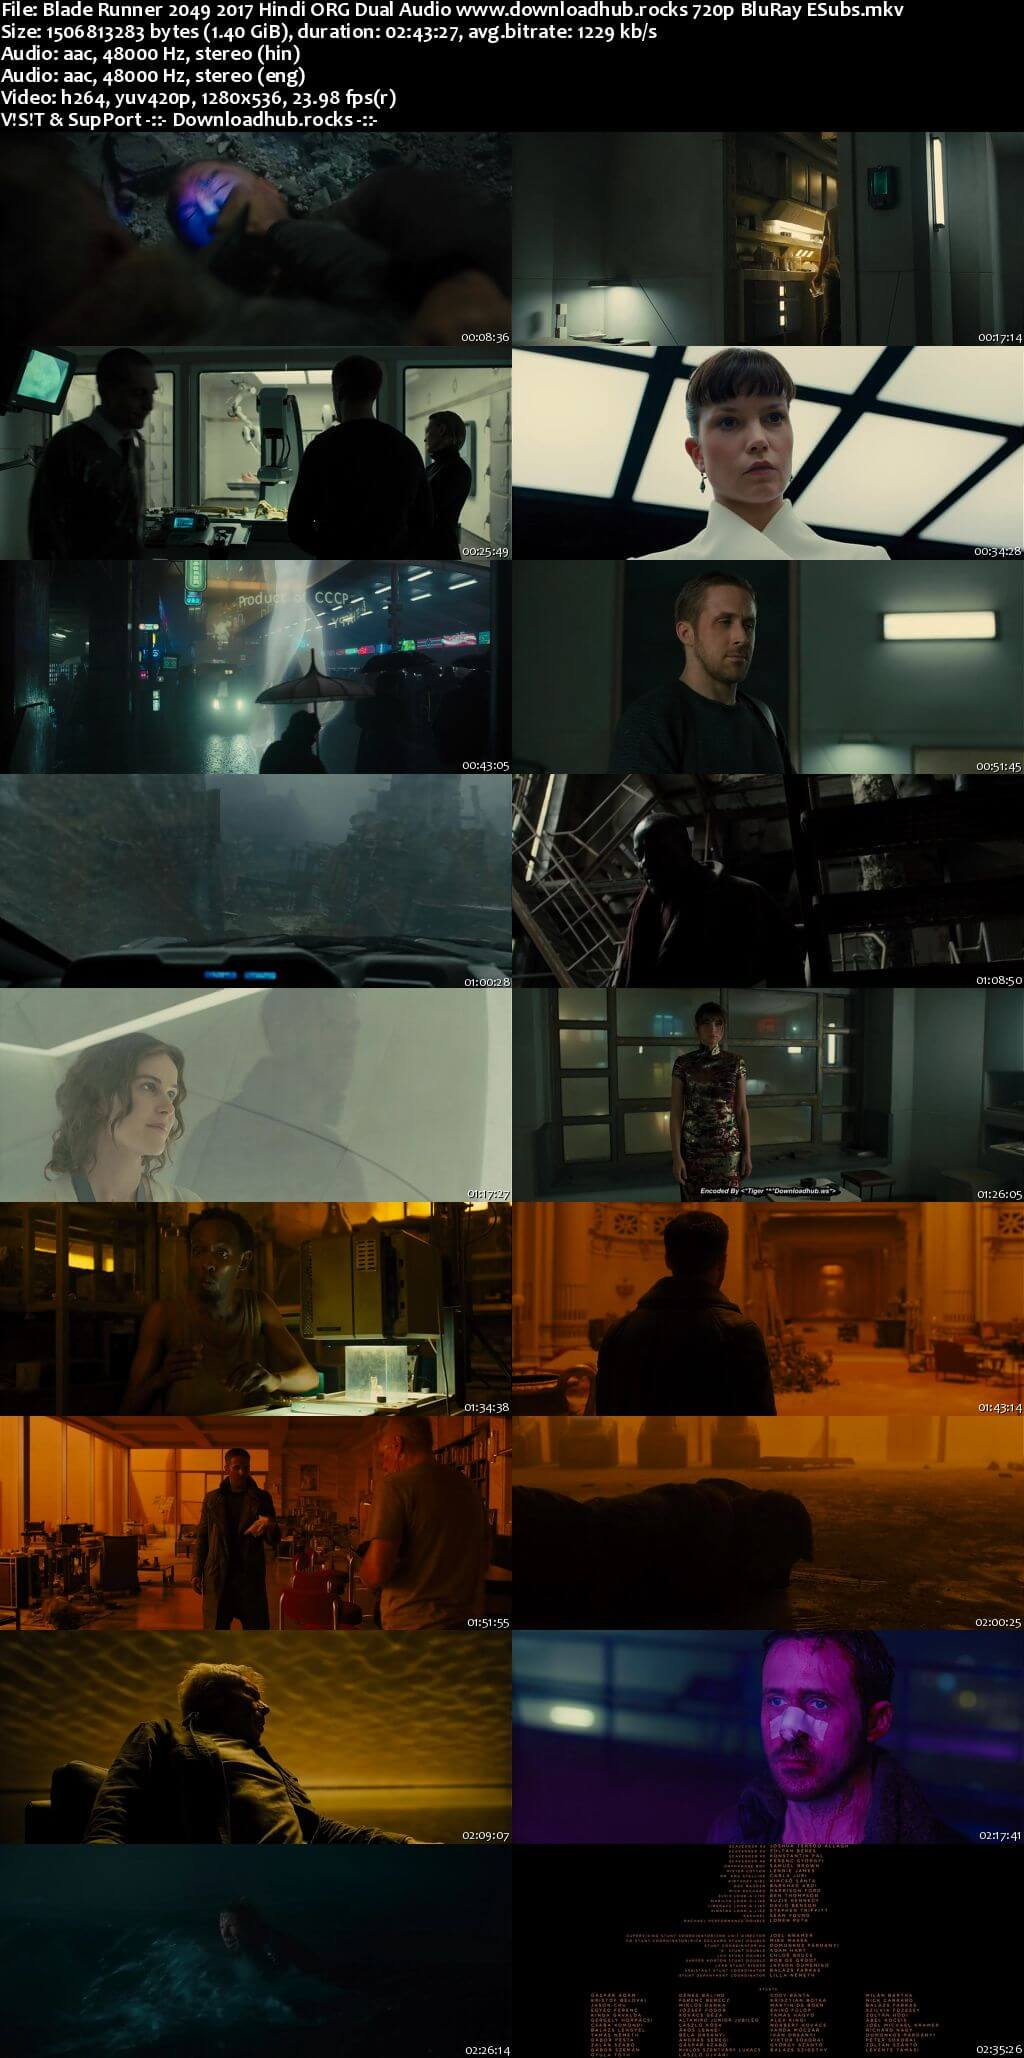 Blade Runner 2049 2017 Hindi ORG Dual Audio 720p BluRay ESubs